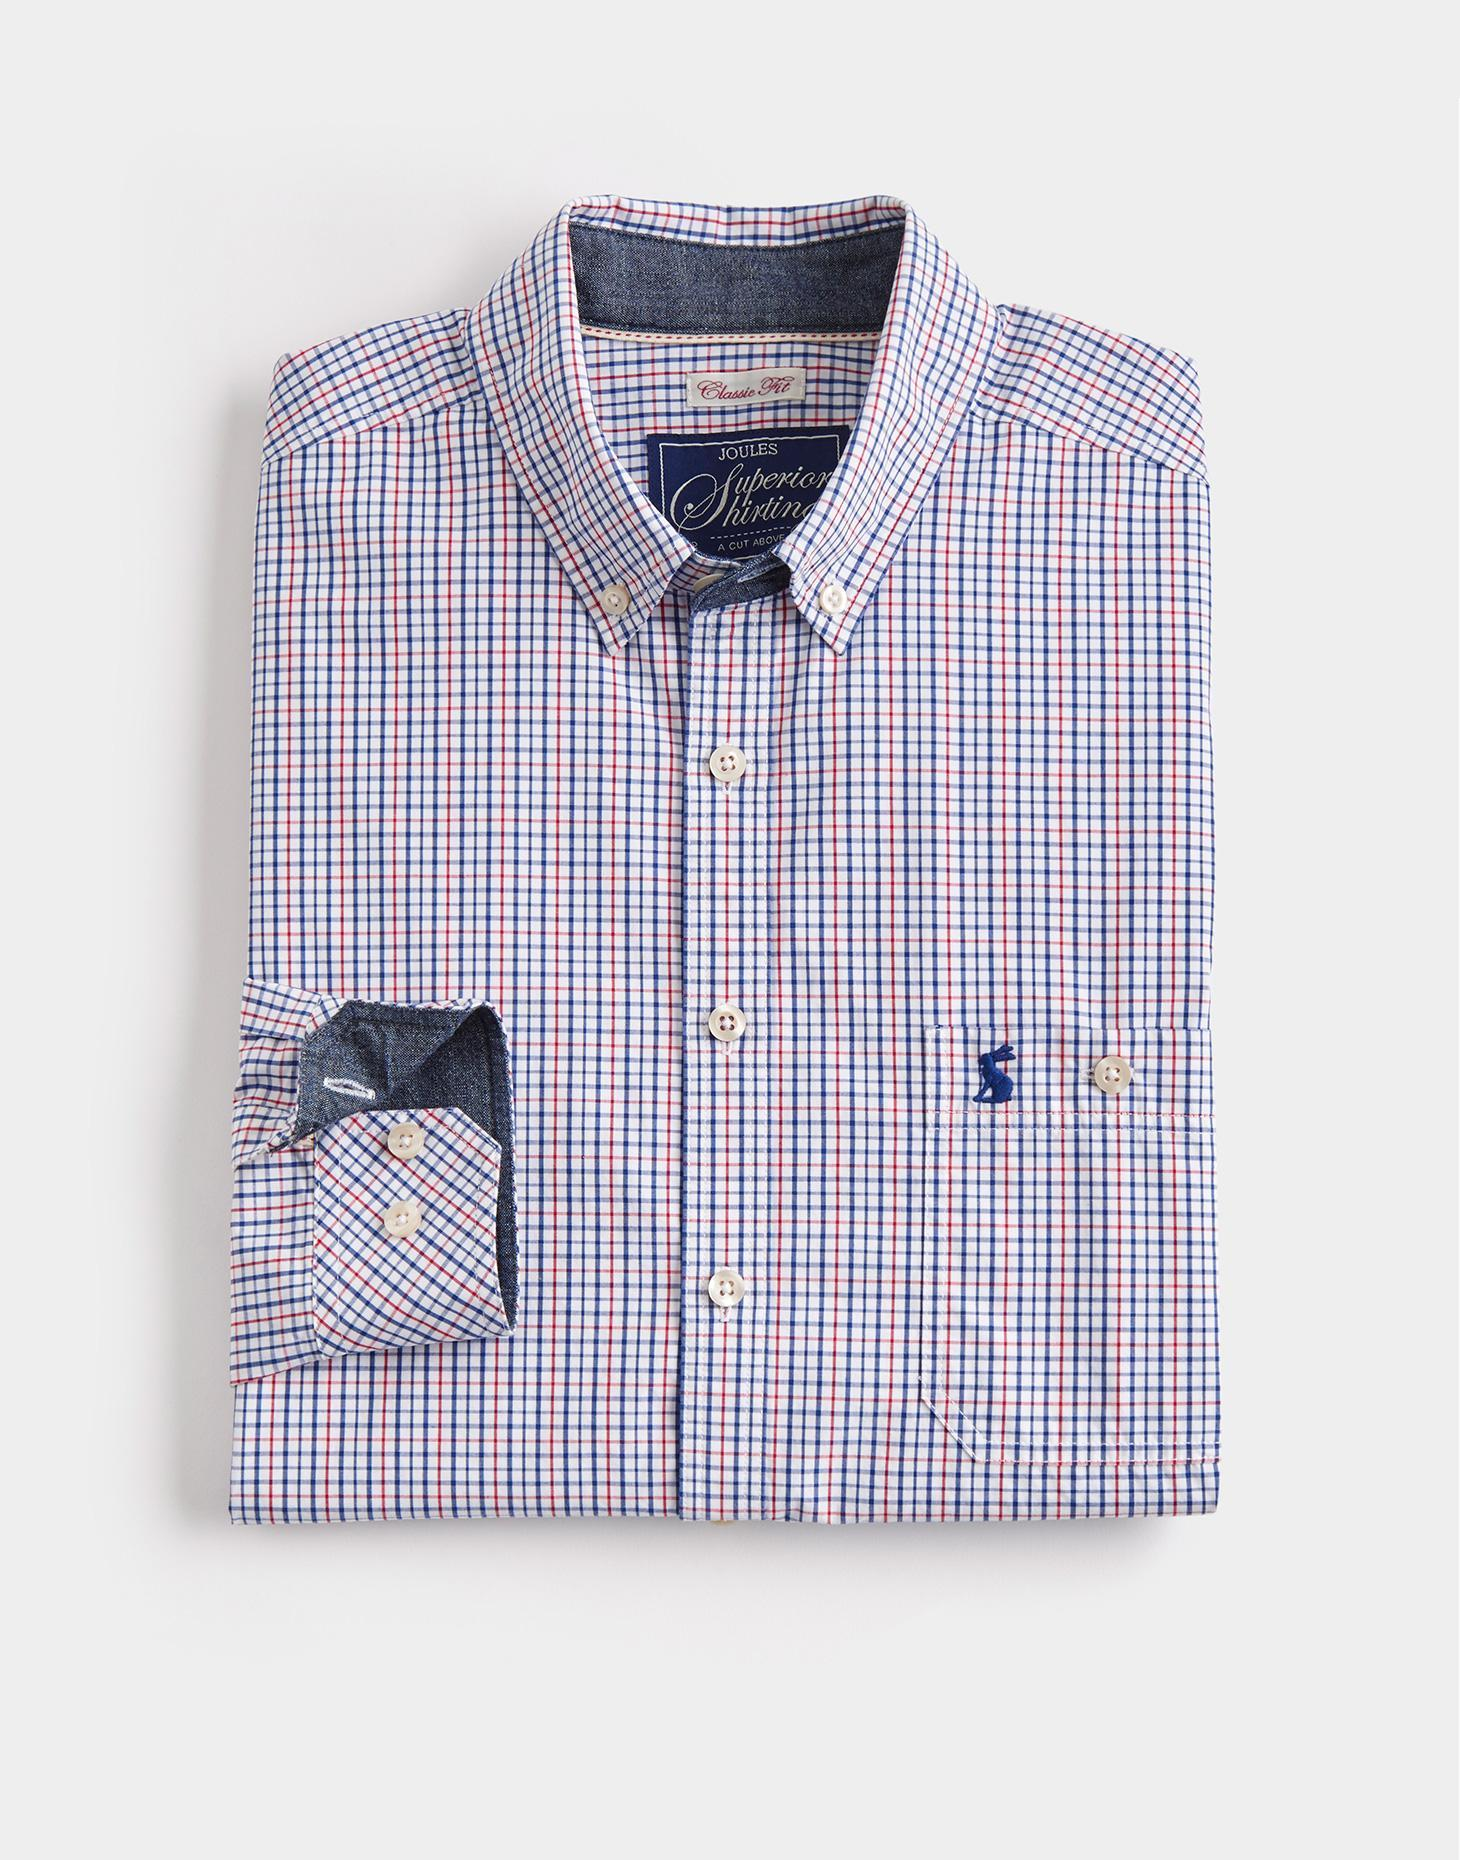 Joules Chalk Mini Check HEWNEY Classic Fit Shirt